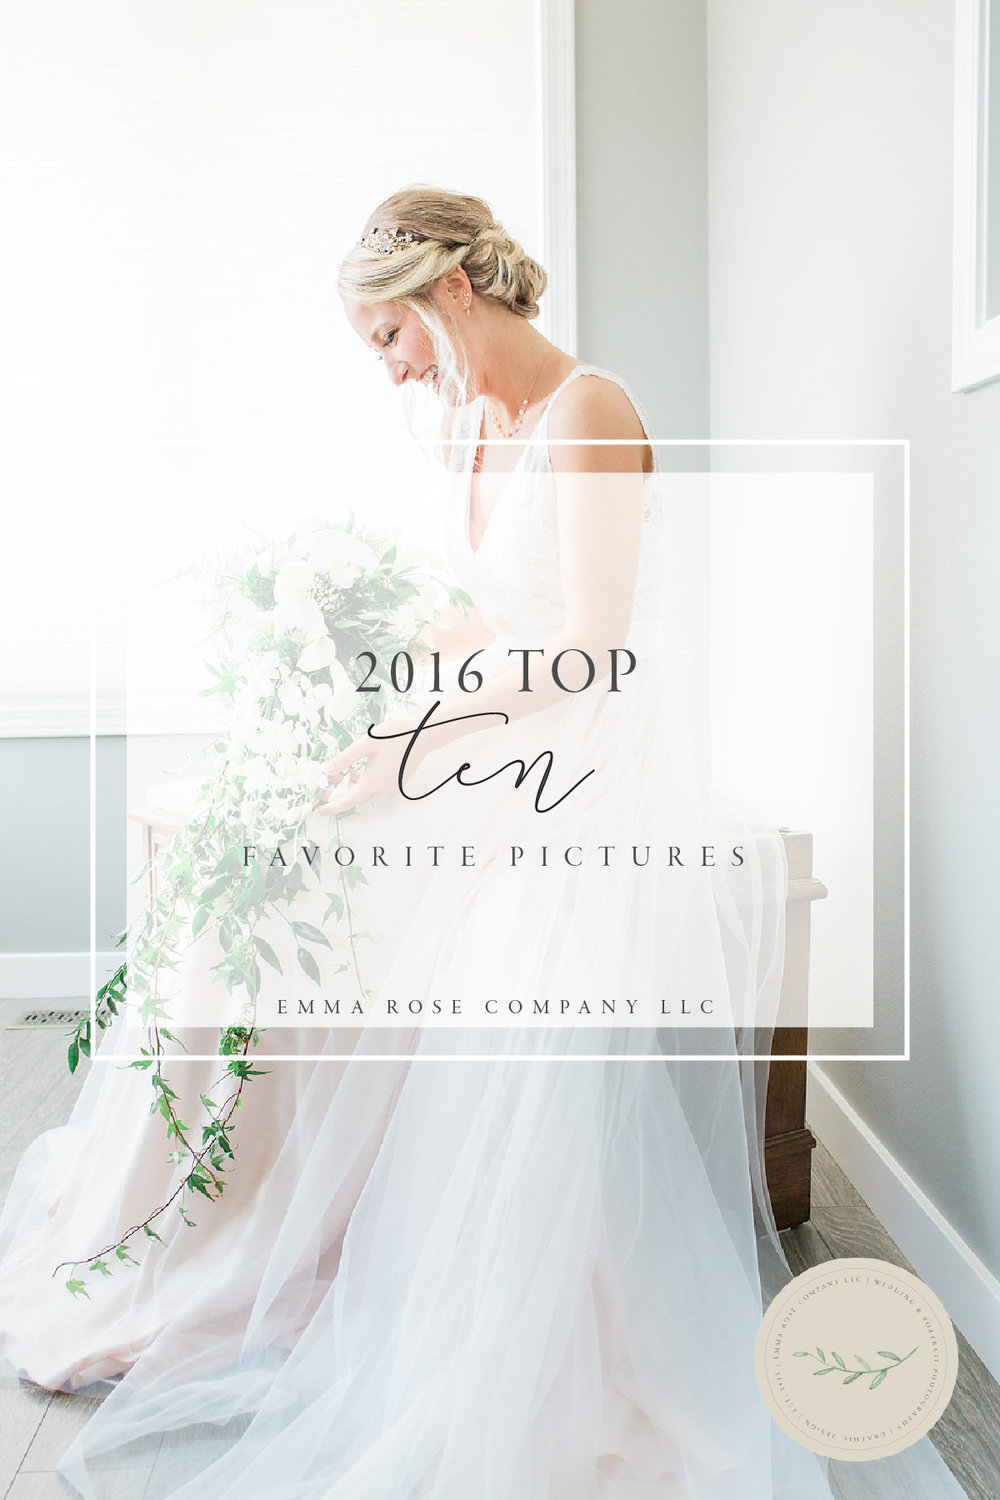 2016 Top Favorite 10 Pictures from Emma Rose Company LLC | Top 10 | Fine Art Wedding and Portrait Photographer